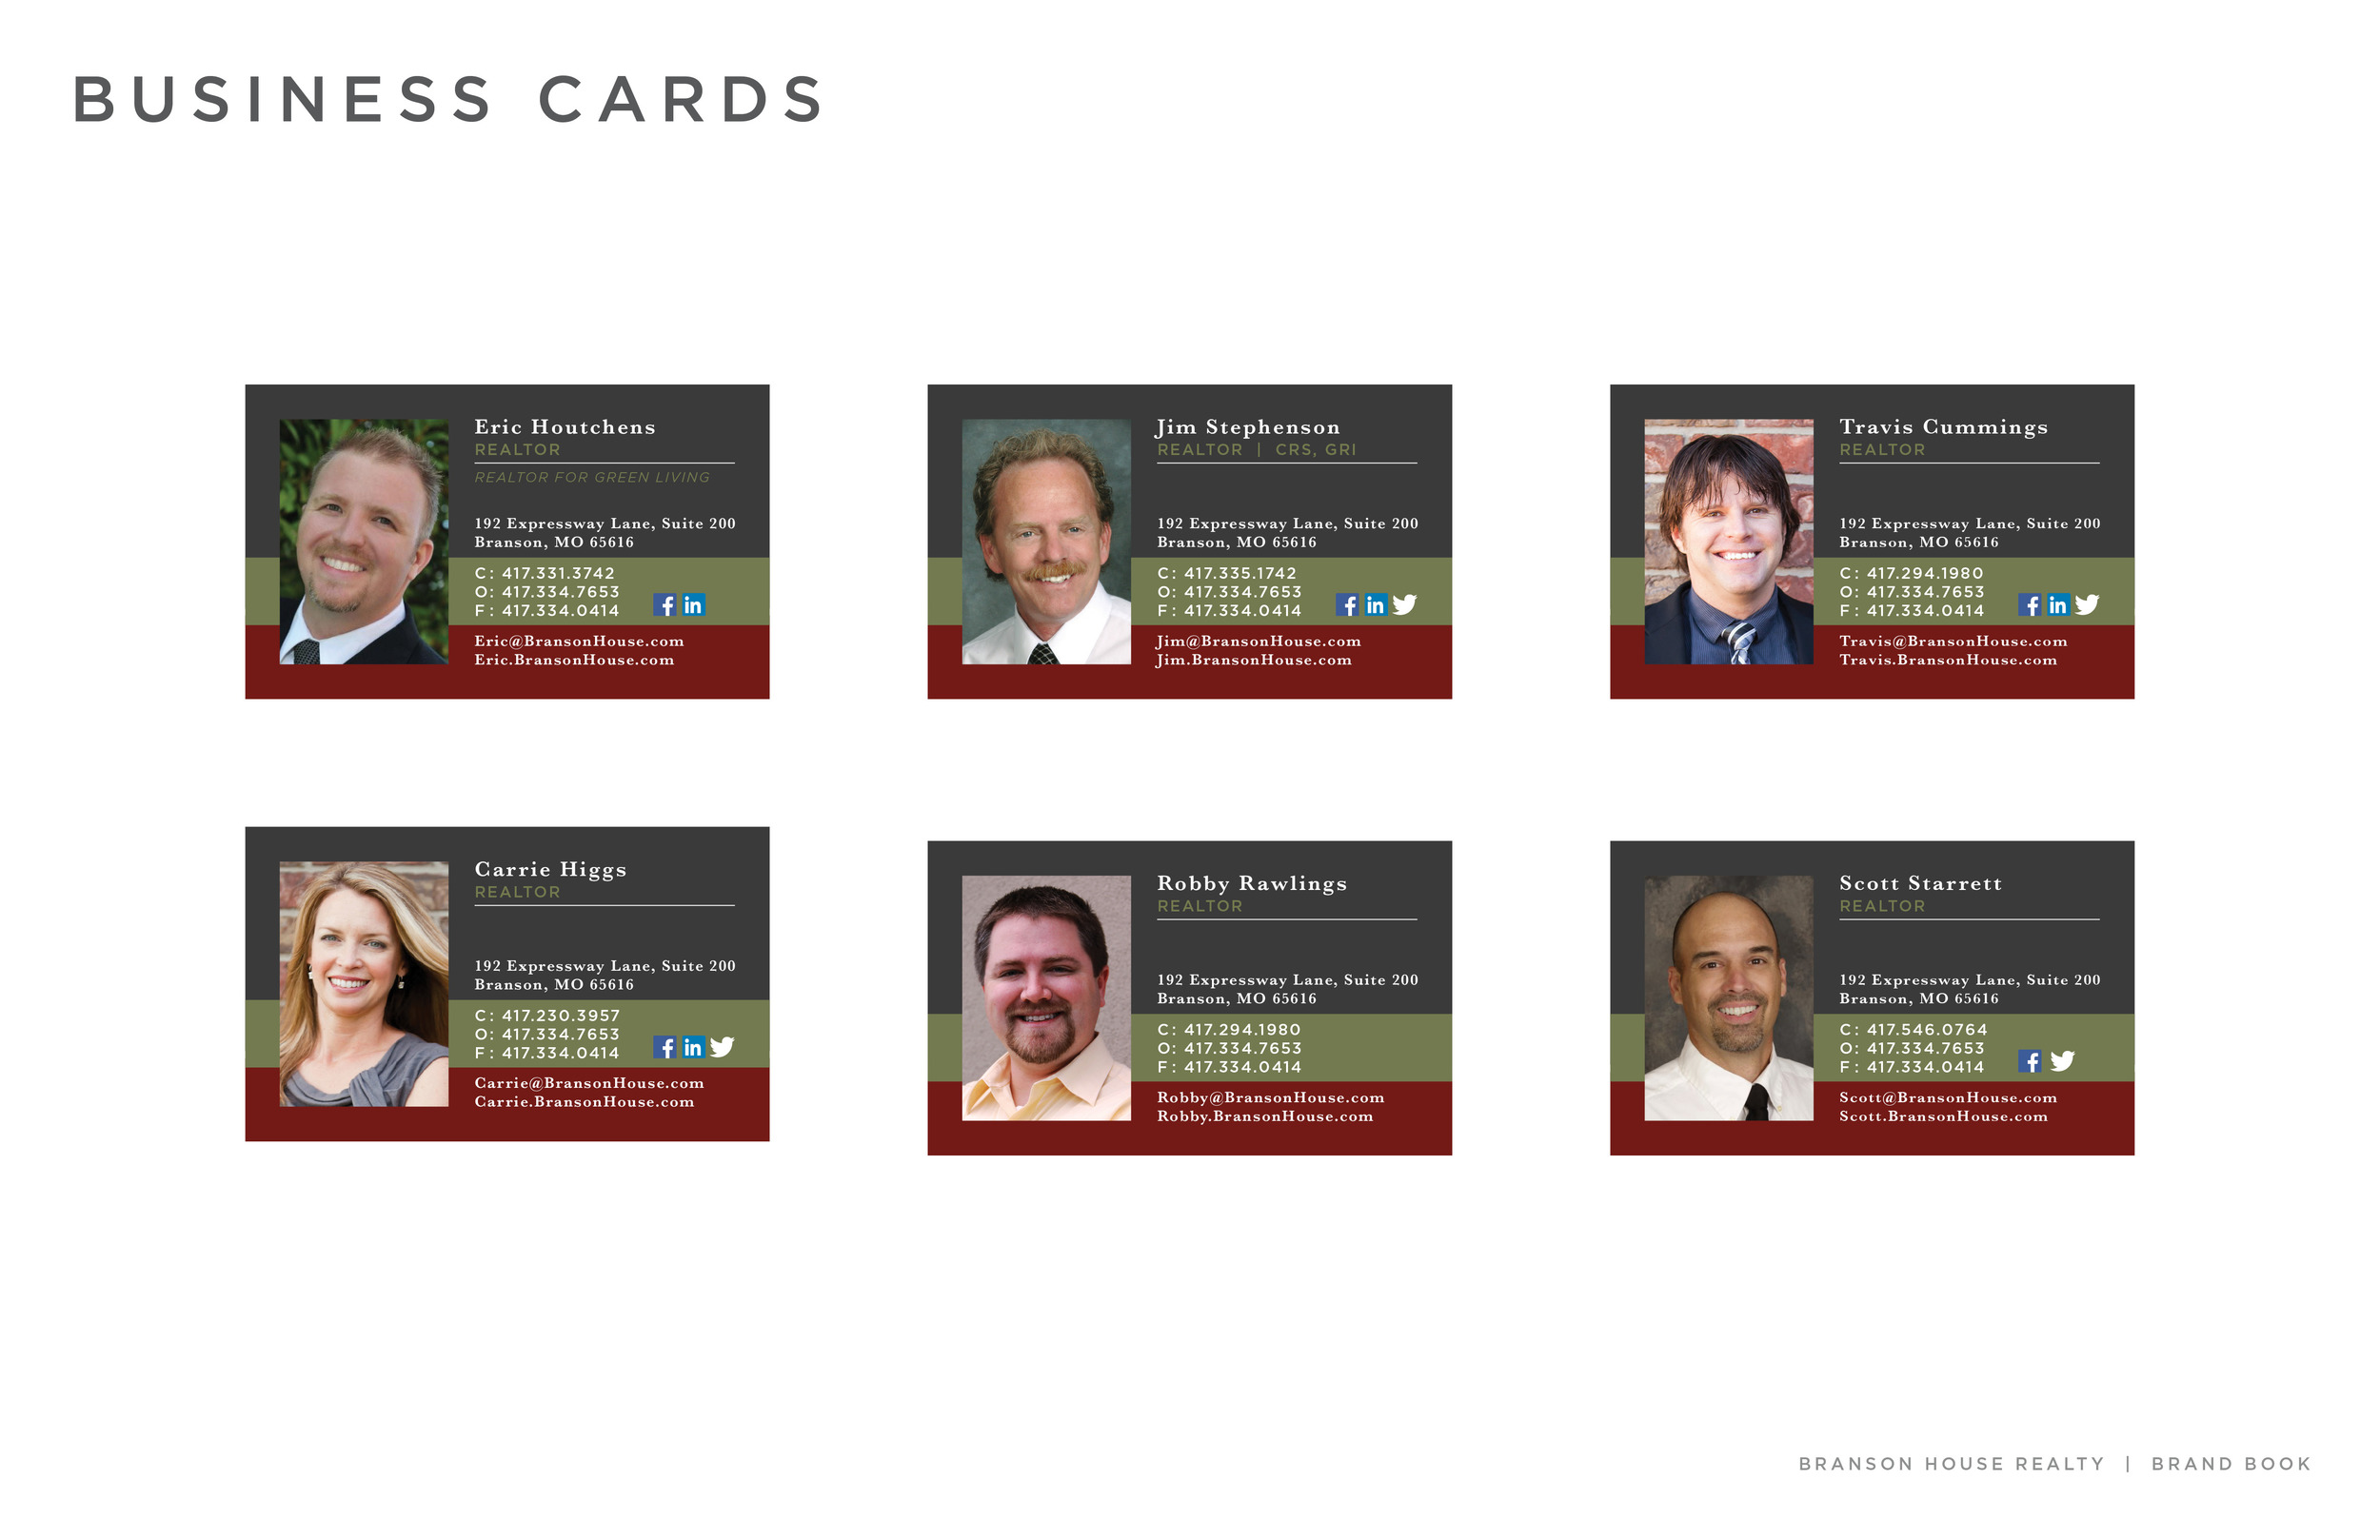 Joel Loera Branson House business cards.jpg